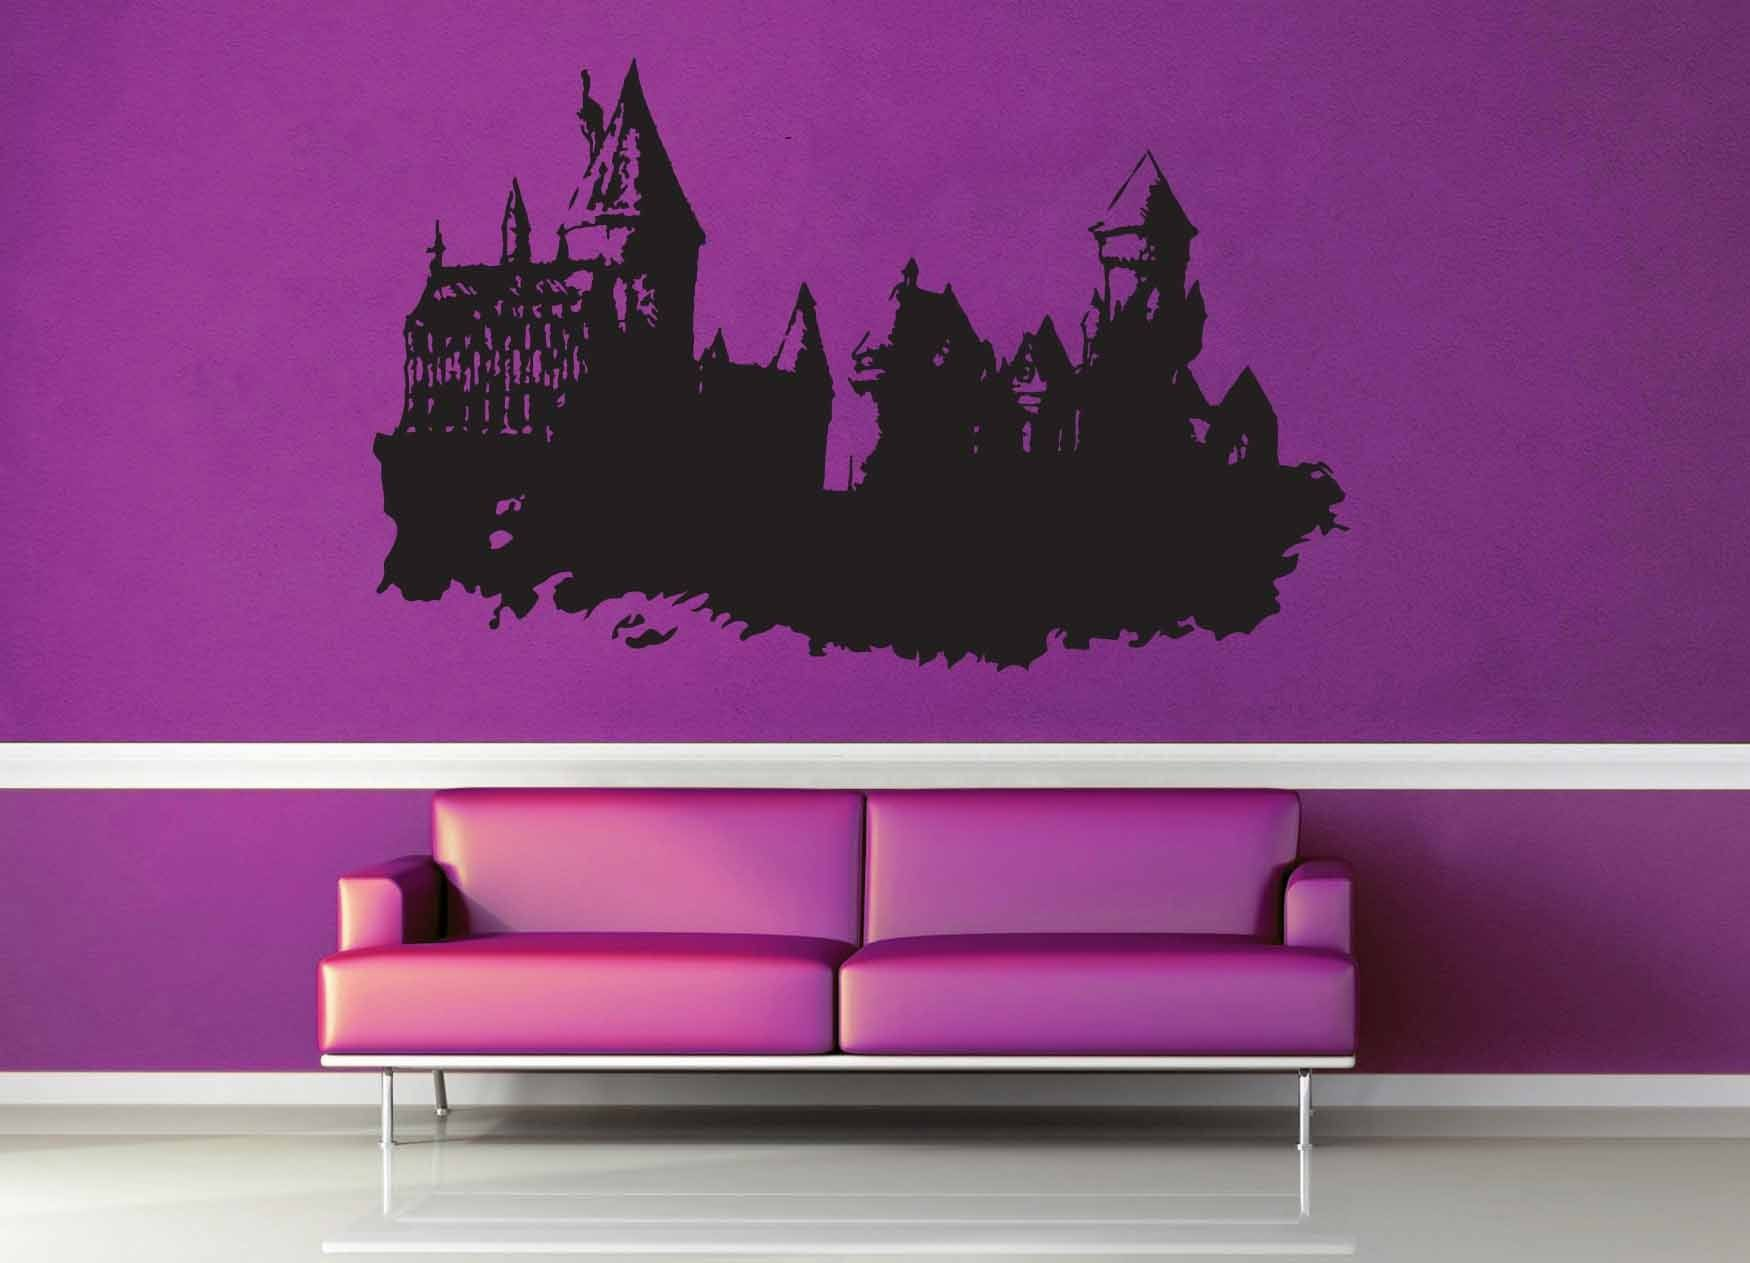 Hogwarts Castle - Harry Potter - Wall Decal - No 1 & Hogwarts Castle - Harry Potter - Wall Decal - No 1 u2013 geekerymade